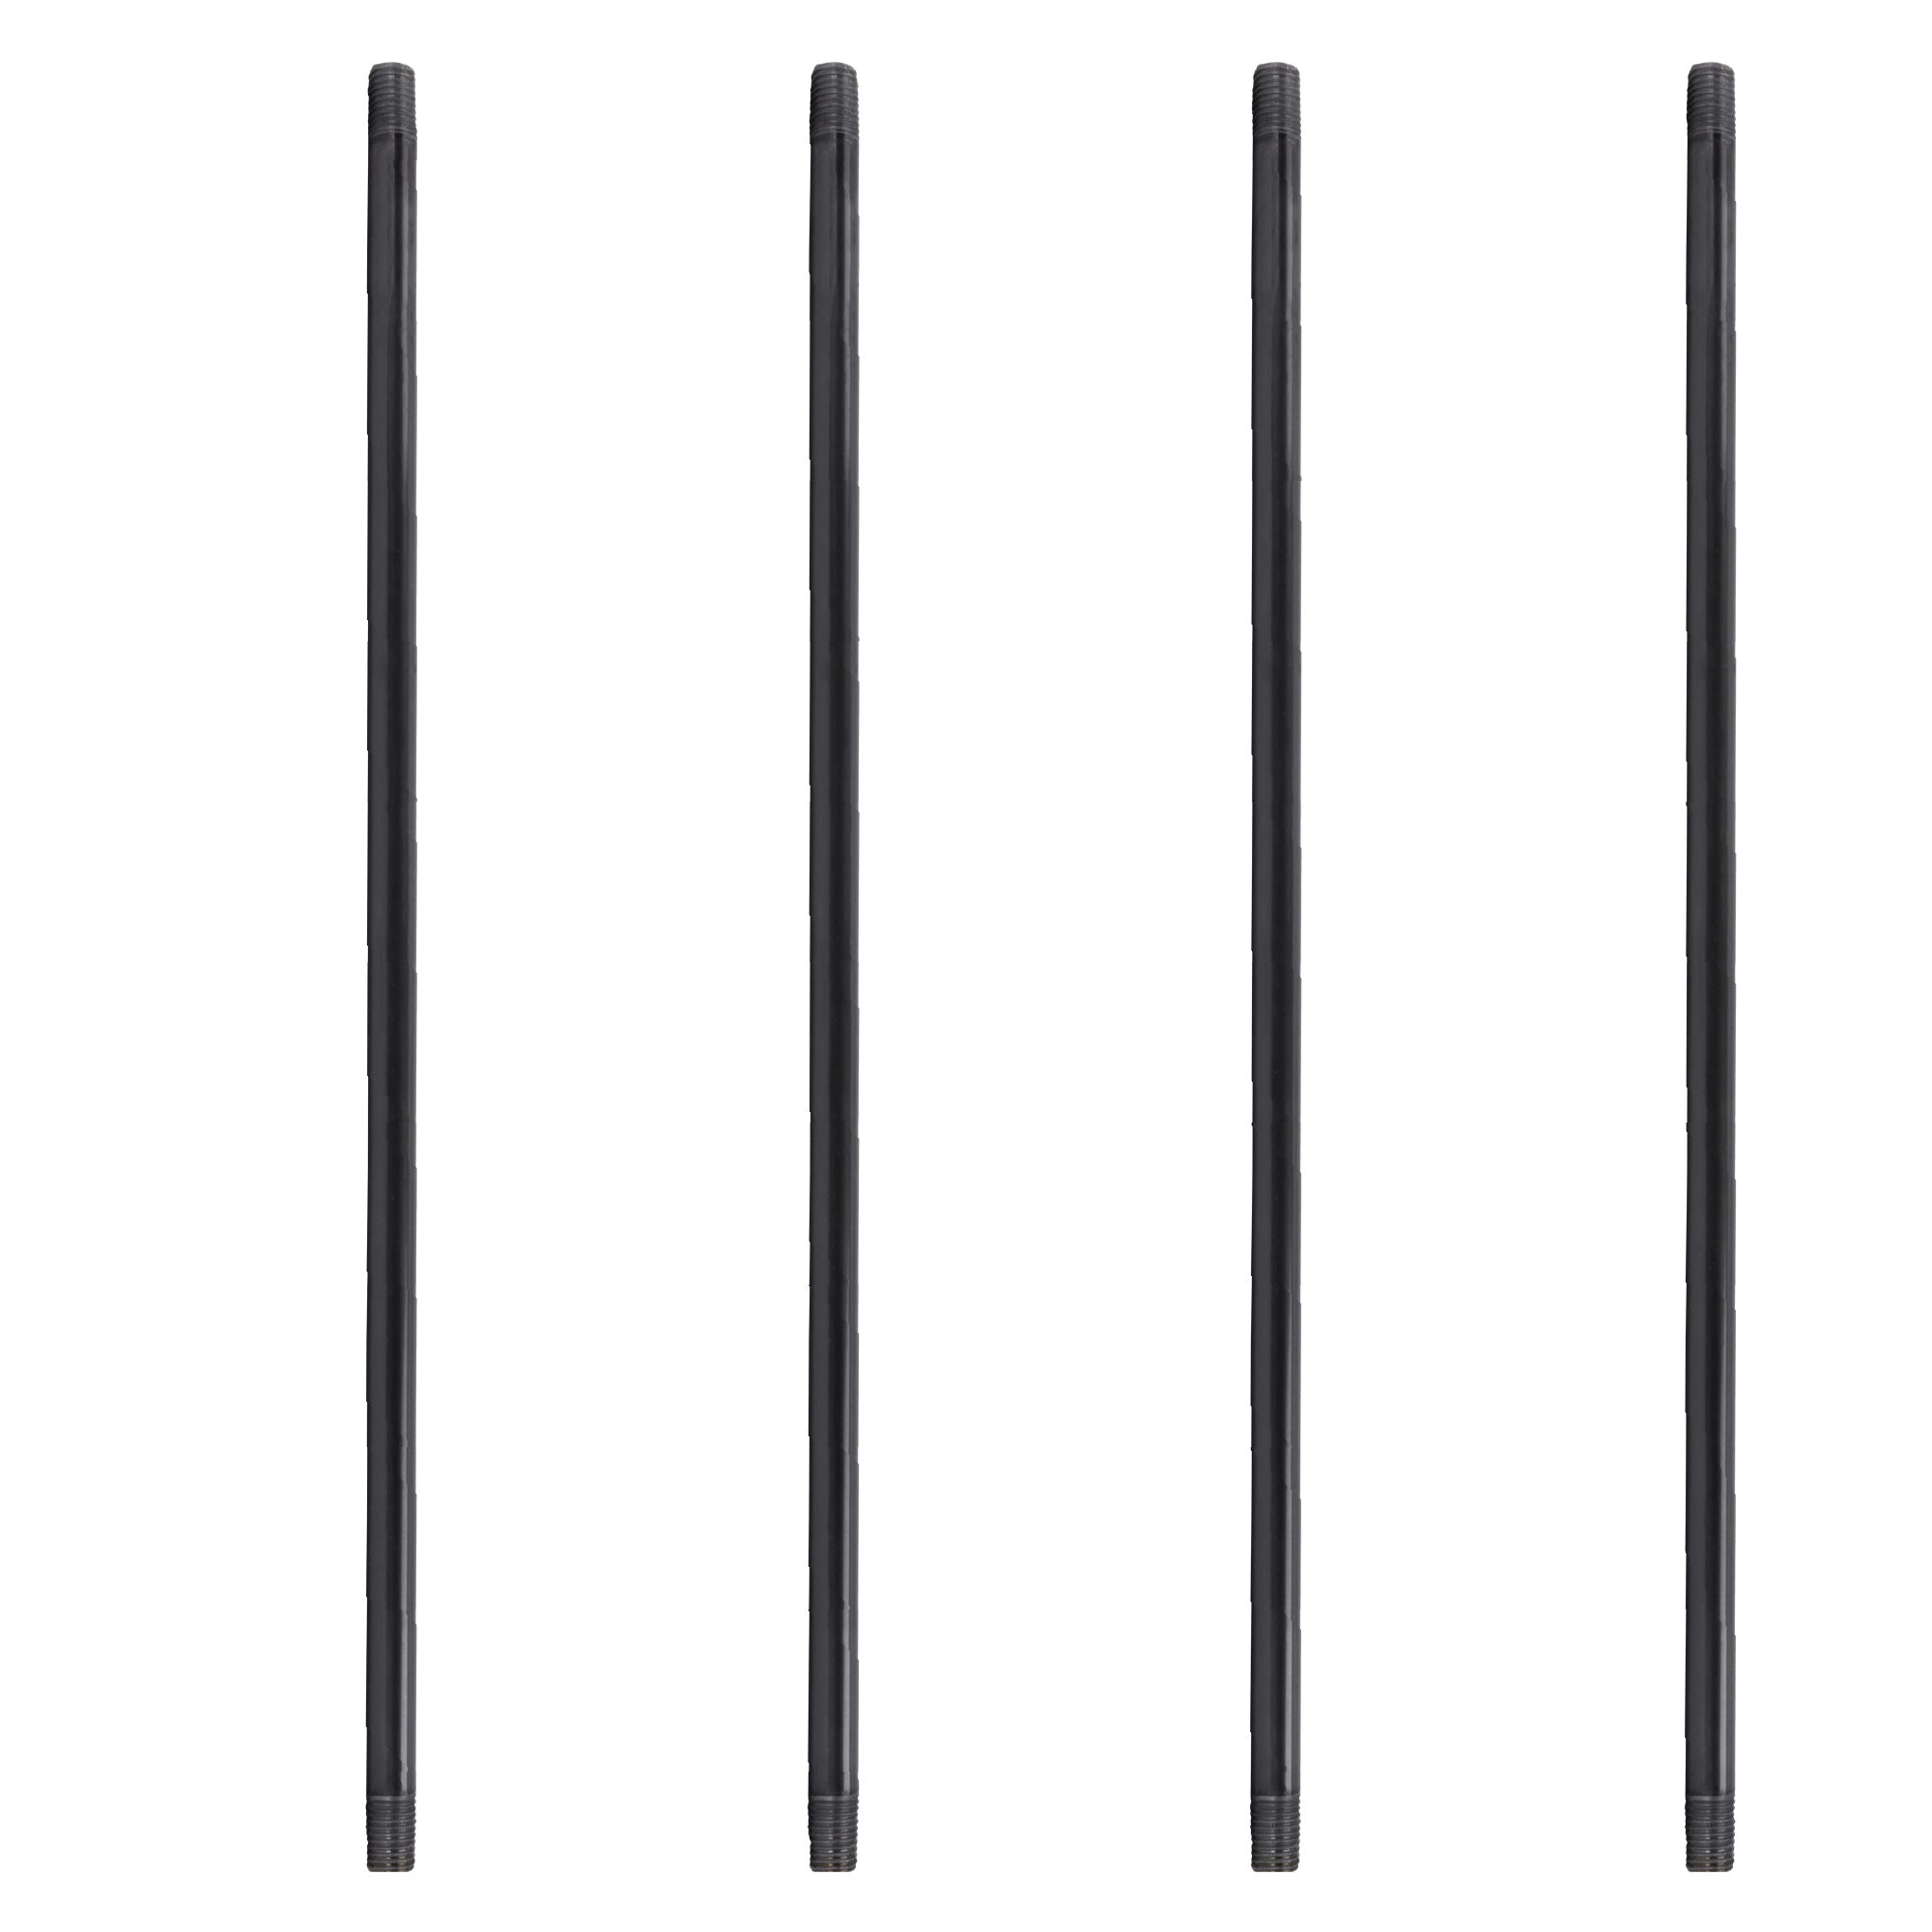 1 in. X 72 in. Black Pipe 4 Pack - Pipe Decor